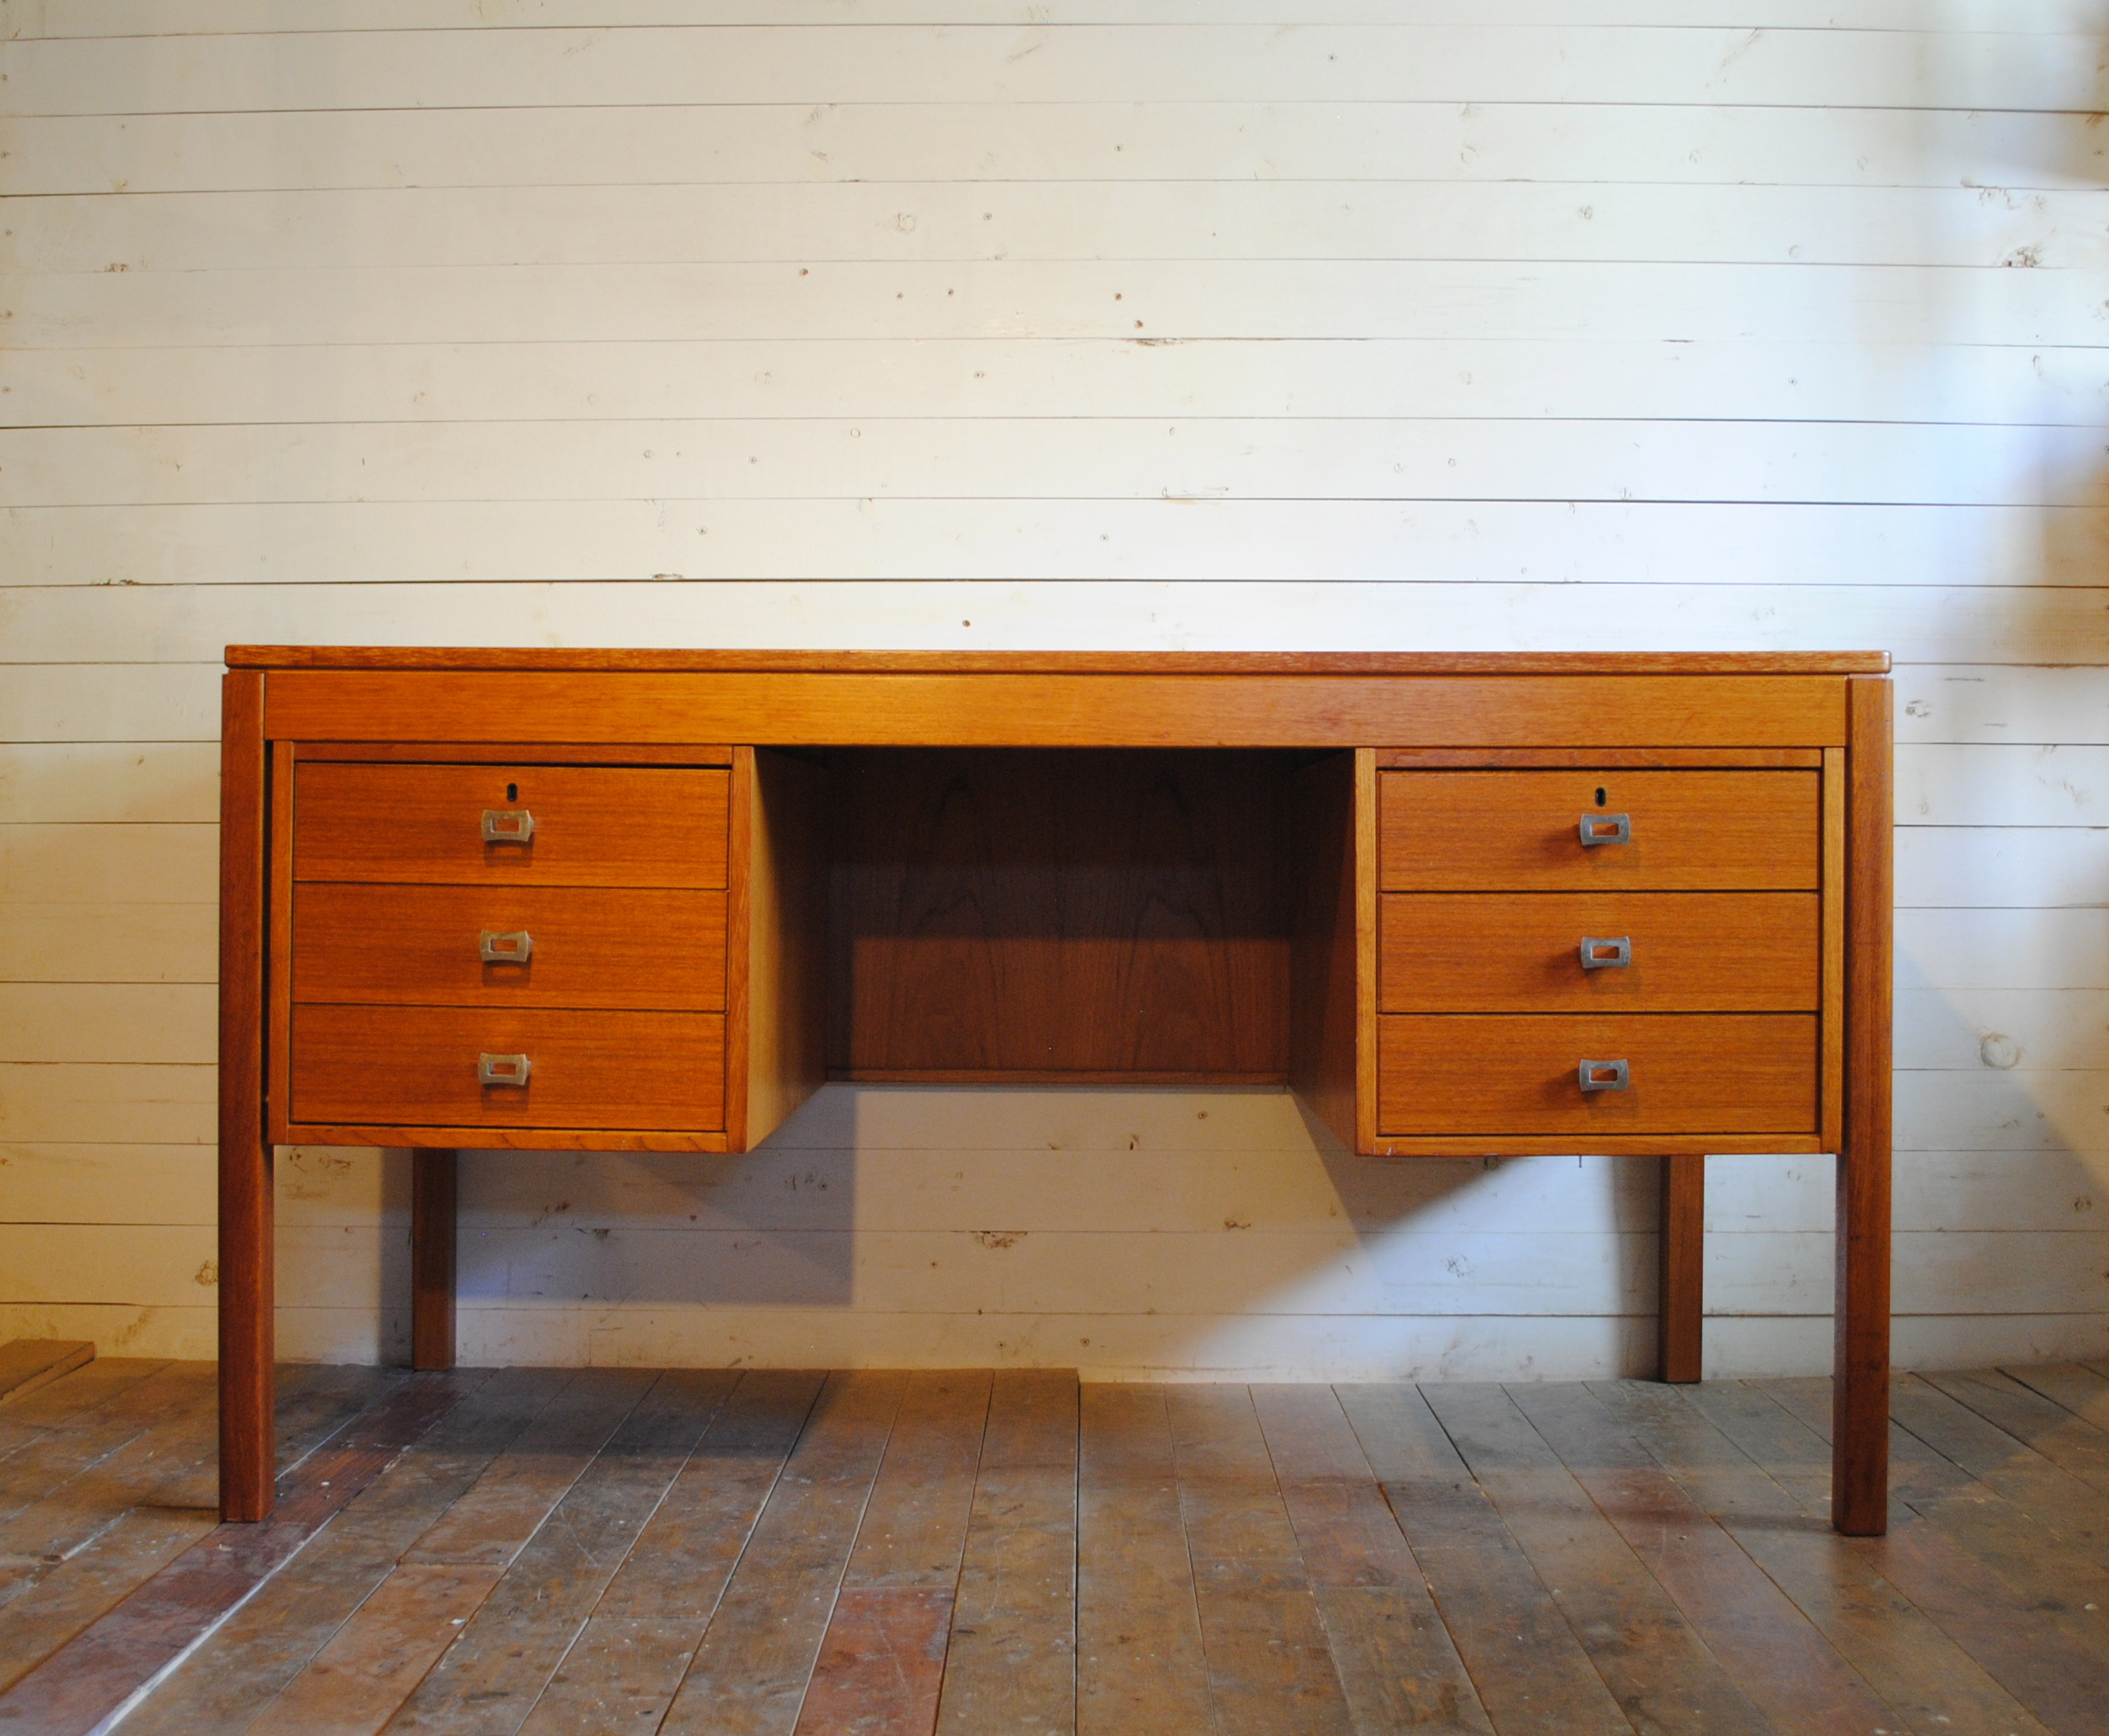 beautiful mid century danish modern teak desk dimensions are 55w x 2625d x 2925h please contact me with any questions beautiful mid century modern danish style teak